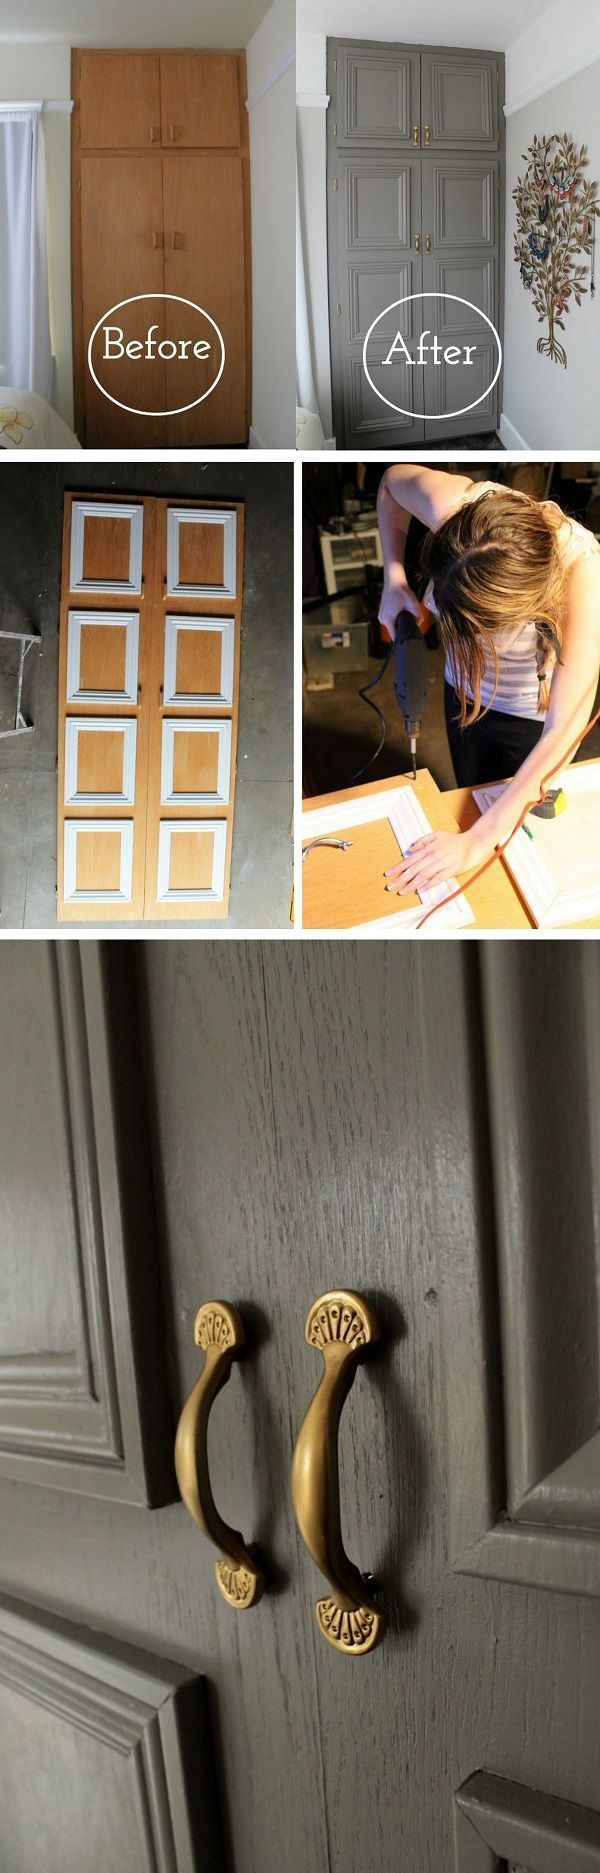 16 simple DIY door projects for amazing decor on a budget - DIY project#amazing #budget #decor #diy #door #project #projects #simple